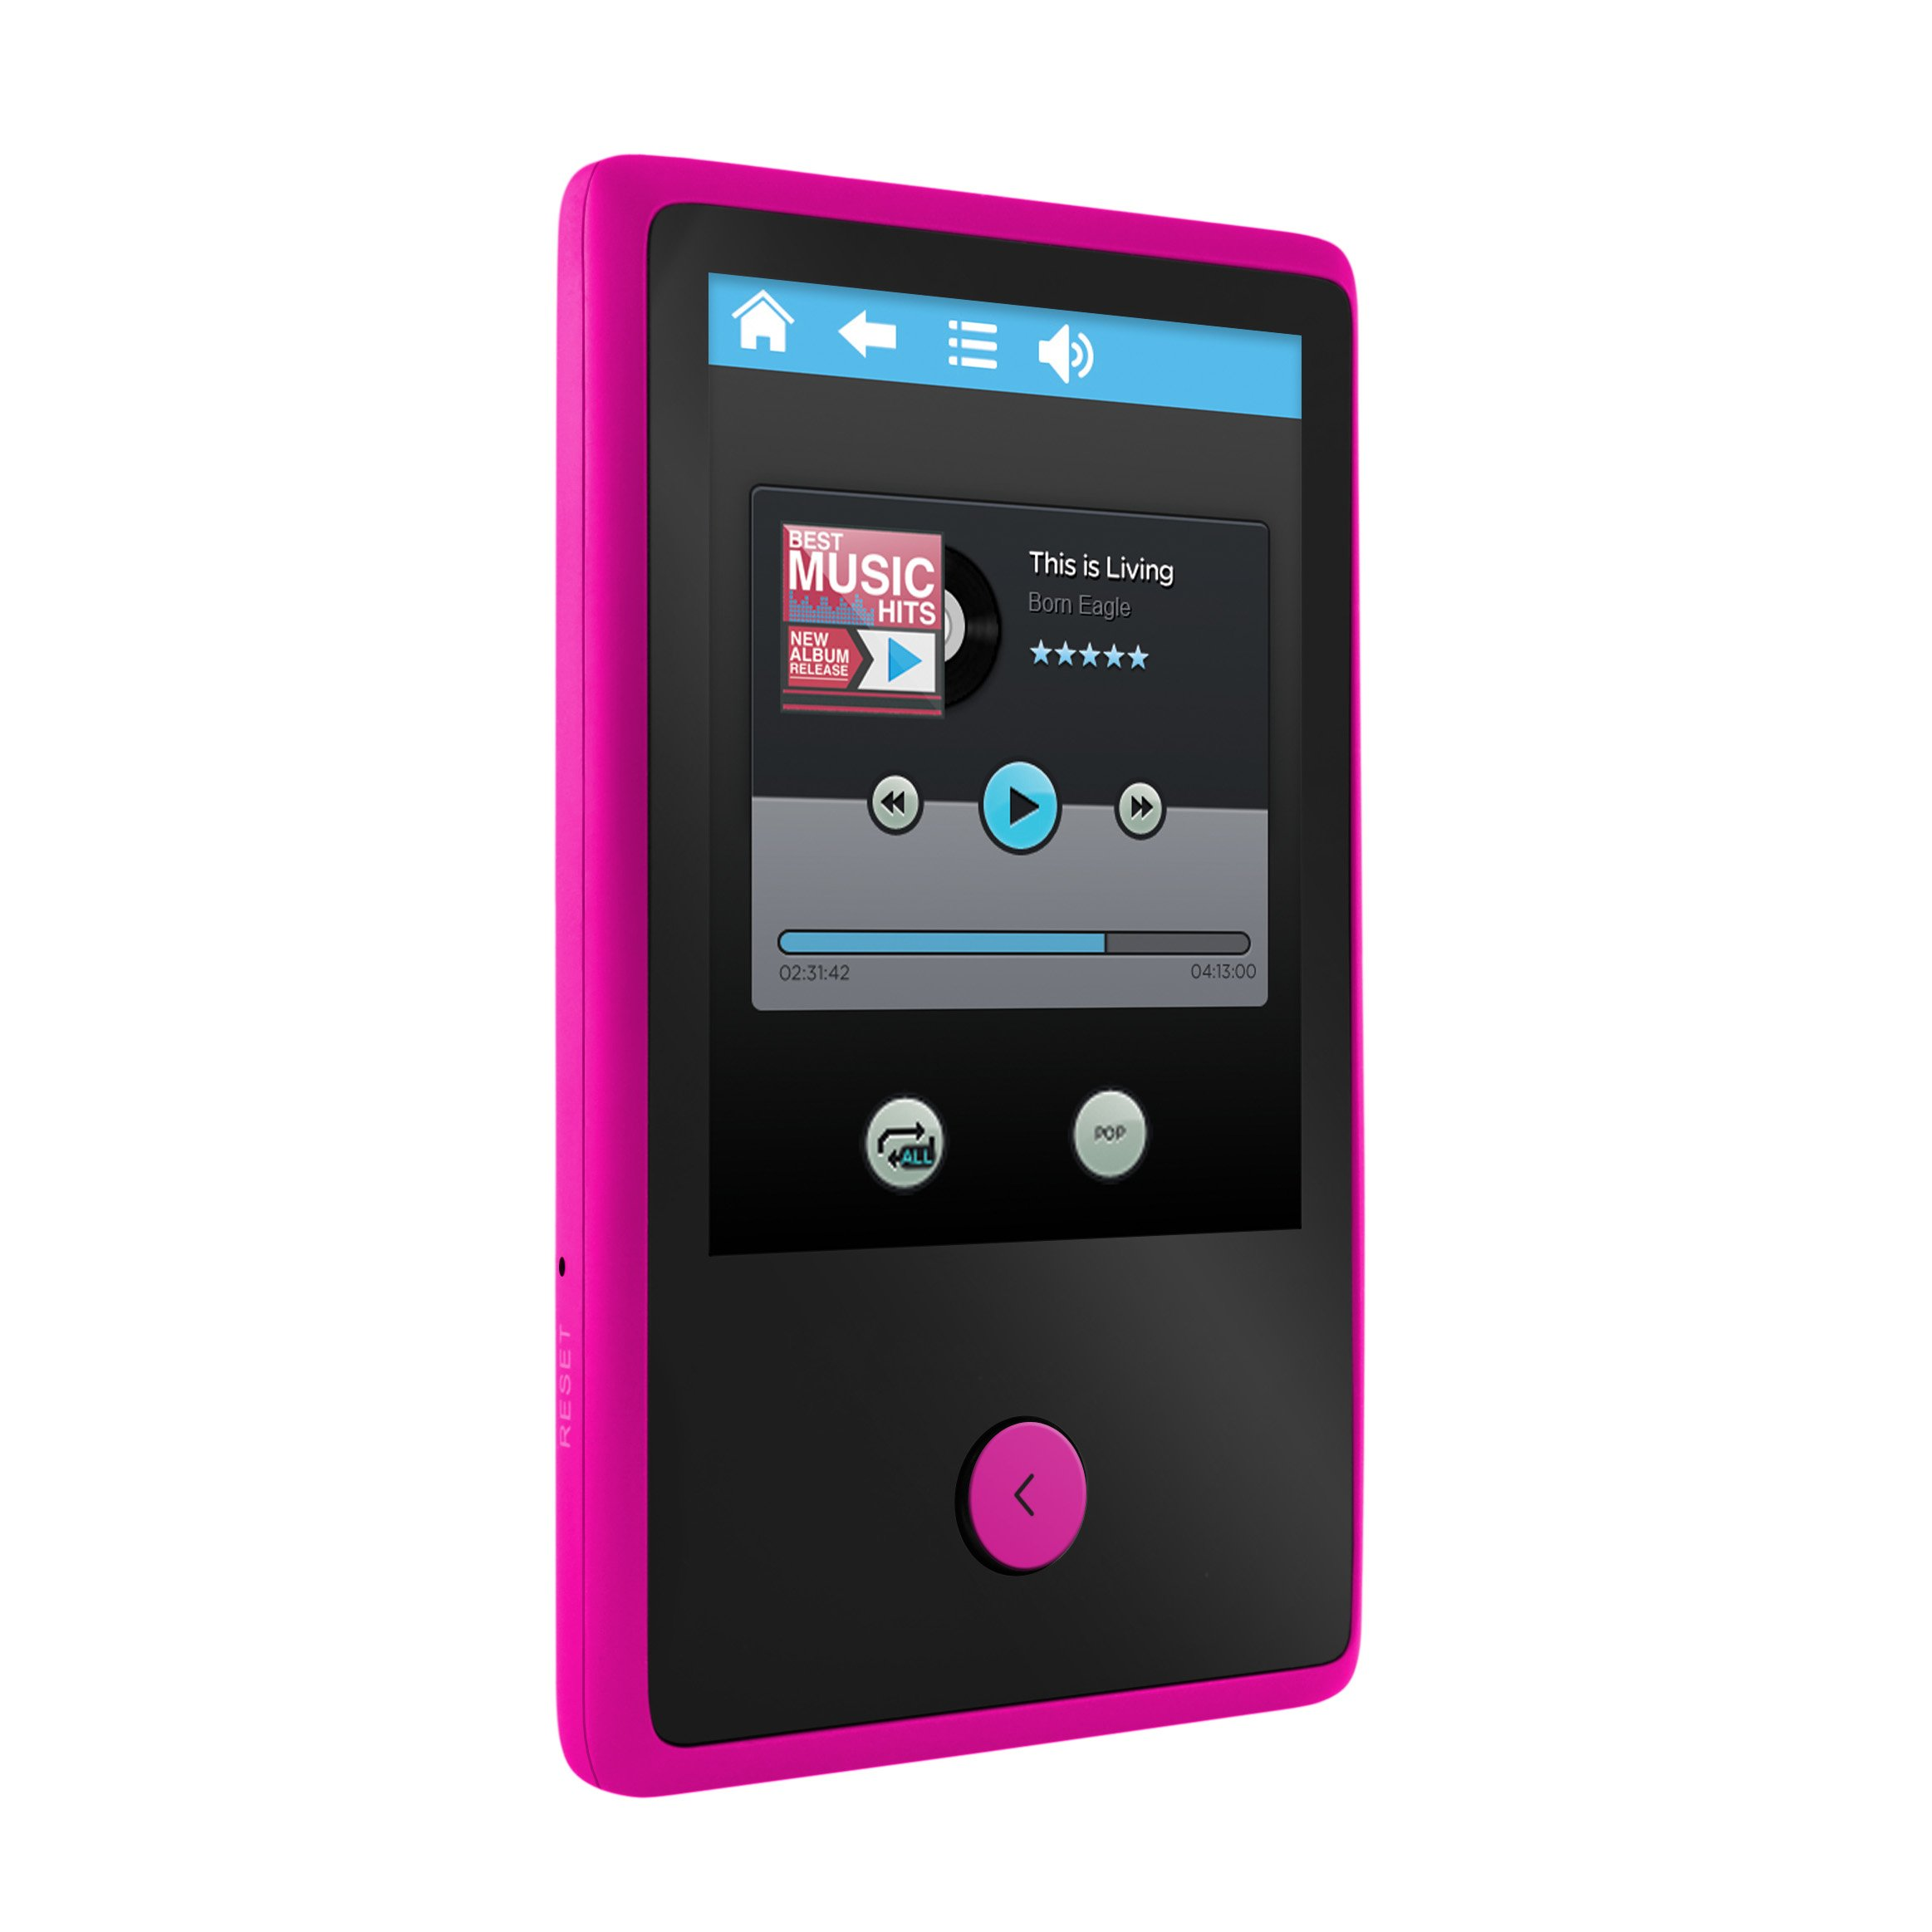 "XOVision Ematic Em318vid 8 Gb Pink Flash Portable Media Player - Audio Player, Photo Viewer, Video Player, Fm Tuner, Voice Recorder, Memory Card Reader, E-book, Fm Recorder - 2.4"" 76800 Pixel (em318vidpn)"